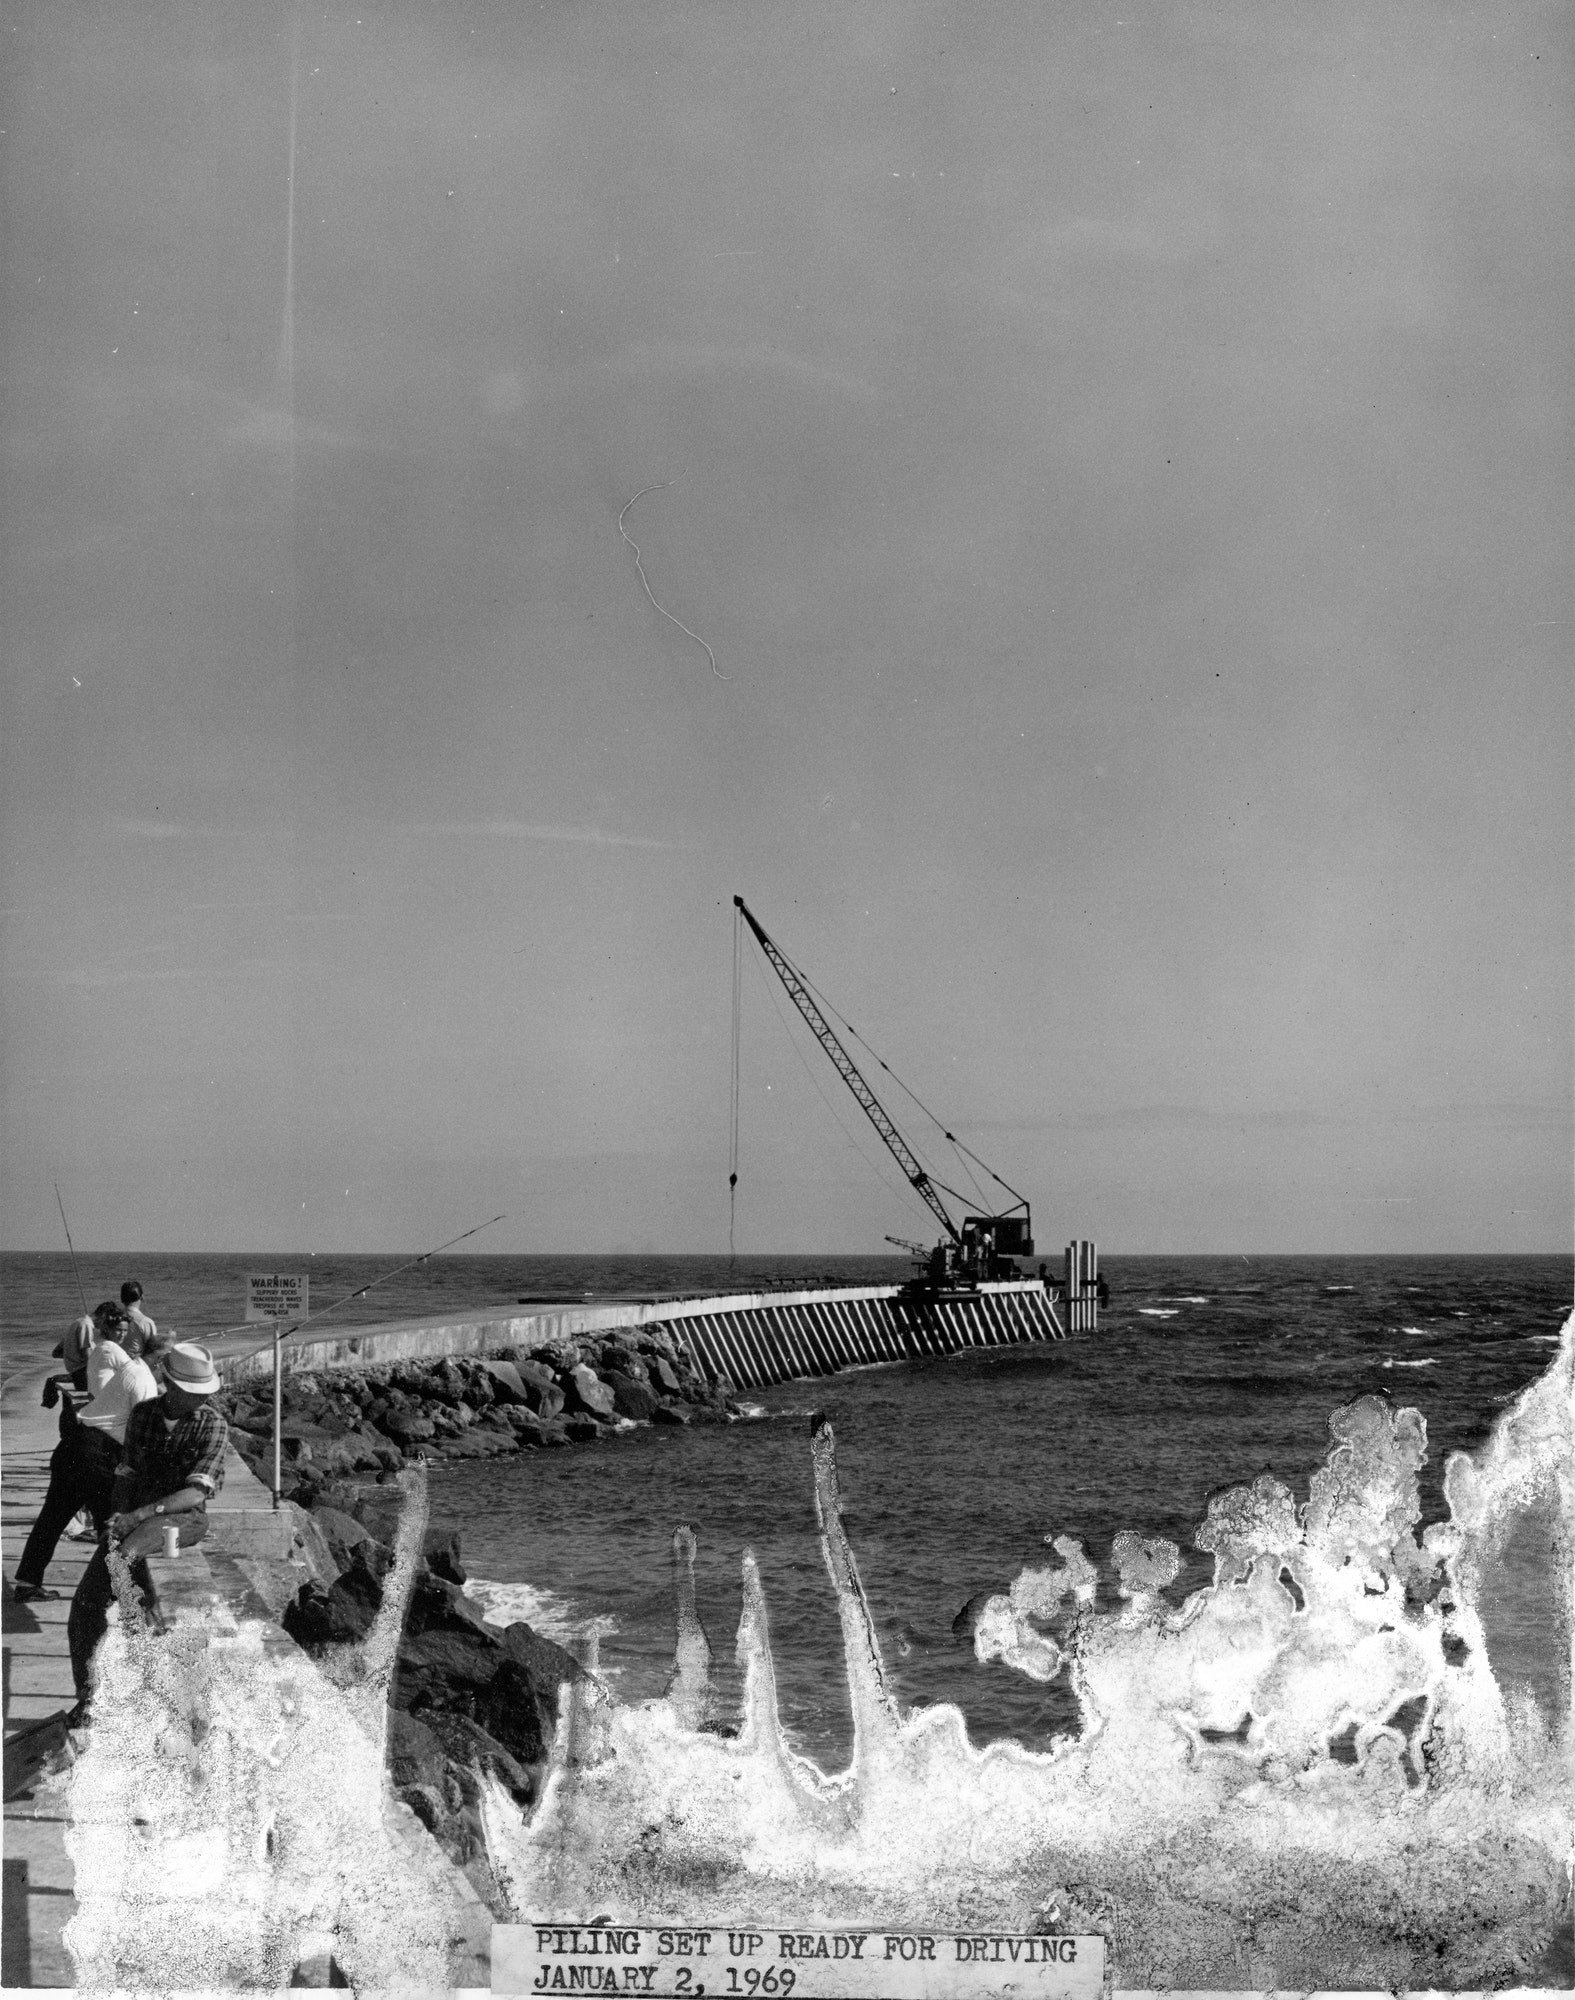 looking out over Atlantic Ocean from base on new north jetty with people in the foreground and construction crane on tip of jetty in background